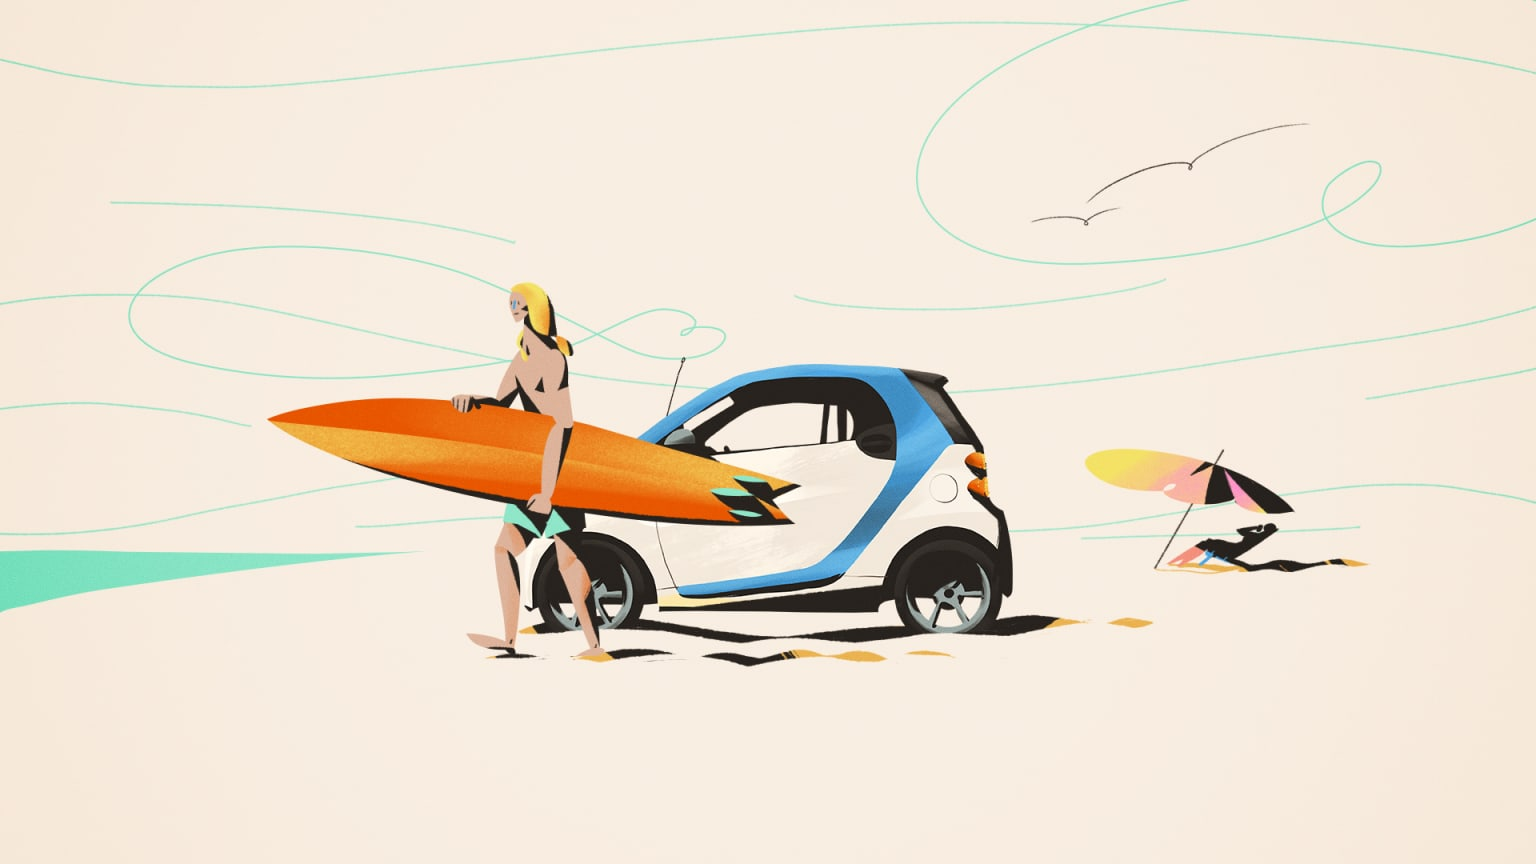 The Power of Sharing - Car2Go & TED